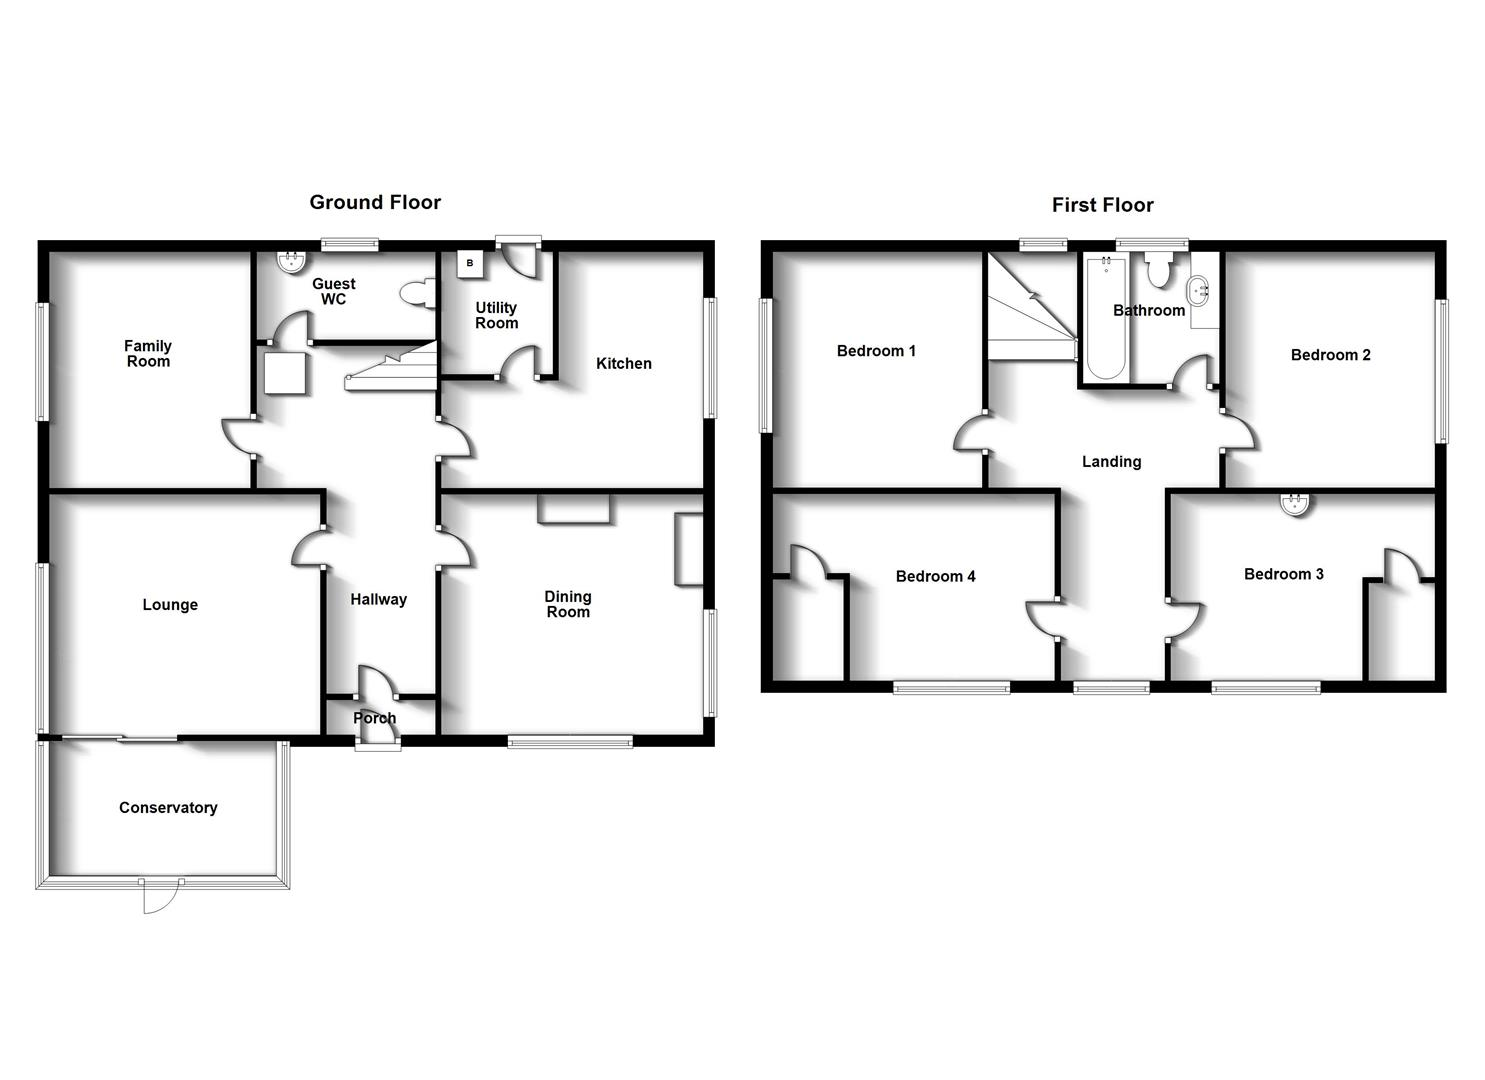 Floorplans For West Winds, Brookside Close, Rugby